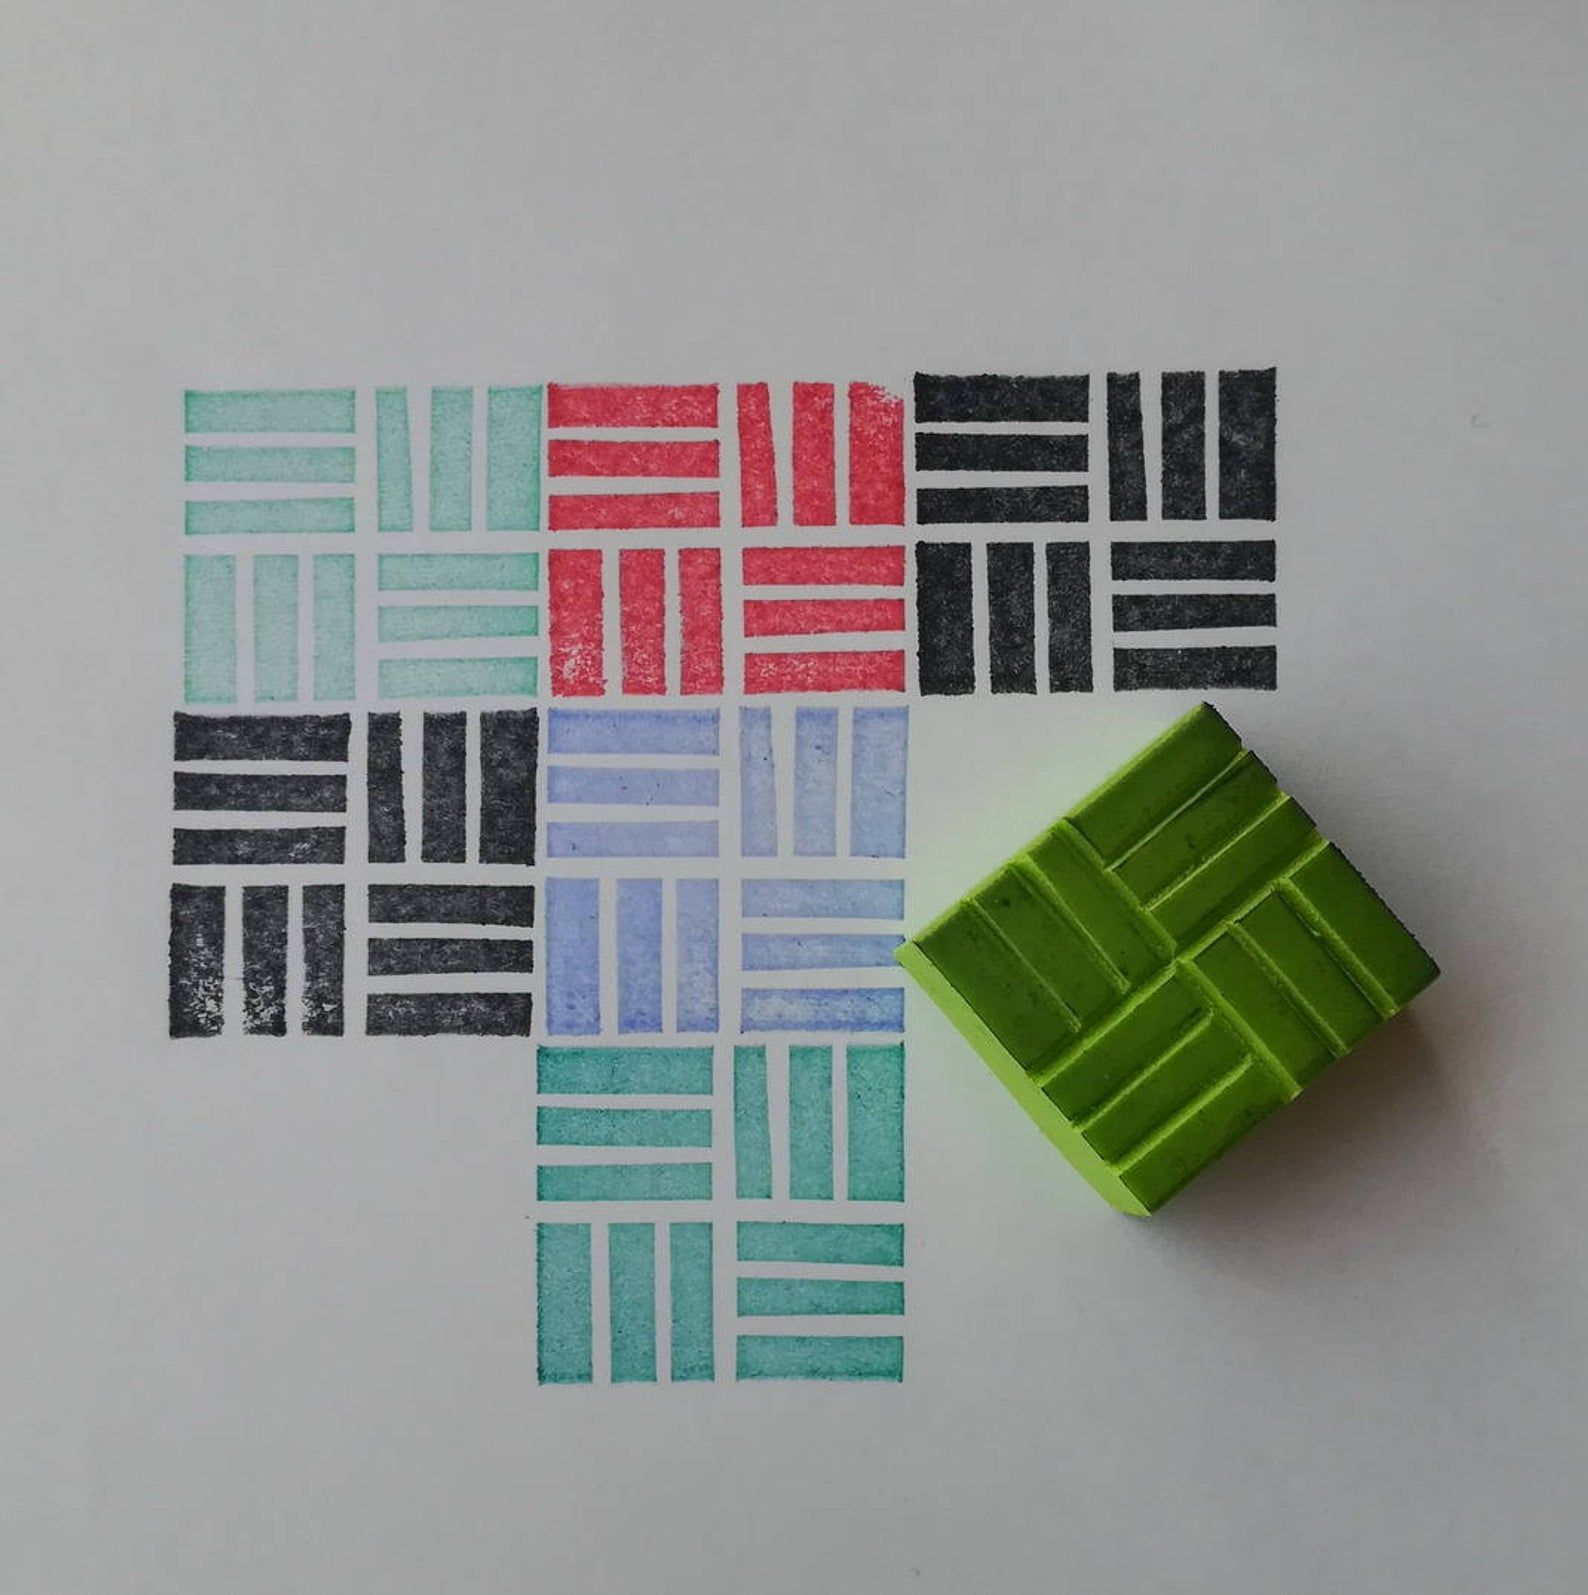 Texture rubber Stamp, texture stamp, square stamp, background stamp, bricks stamp, pattern stamp, geometric stamp, rubber stamp, cardmaking